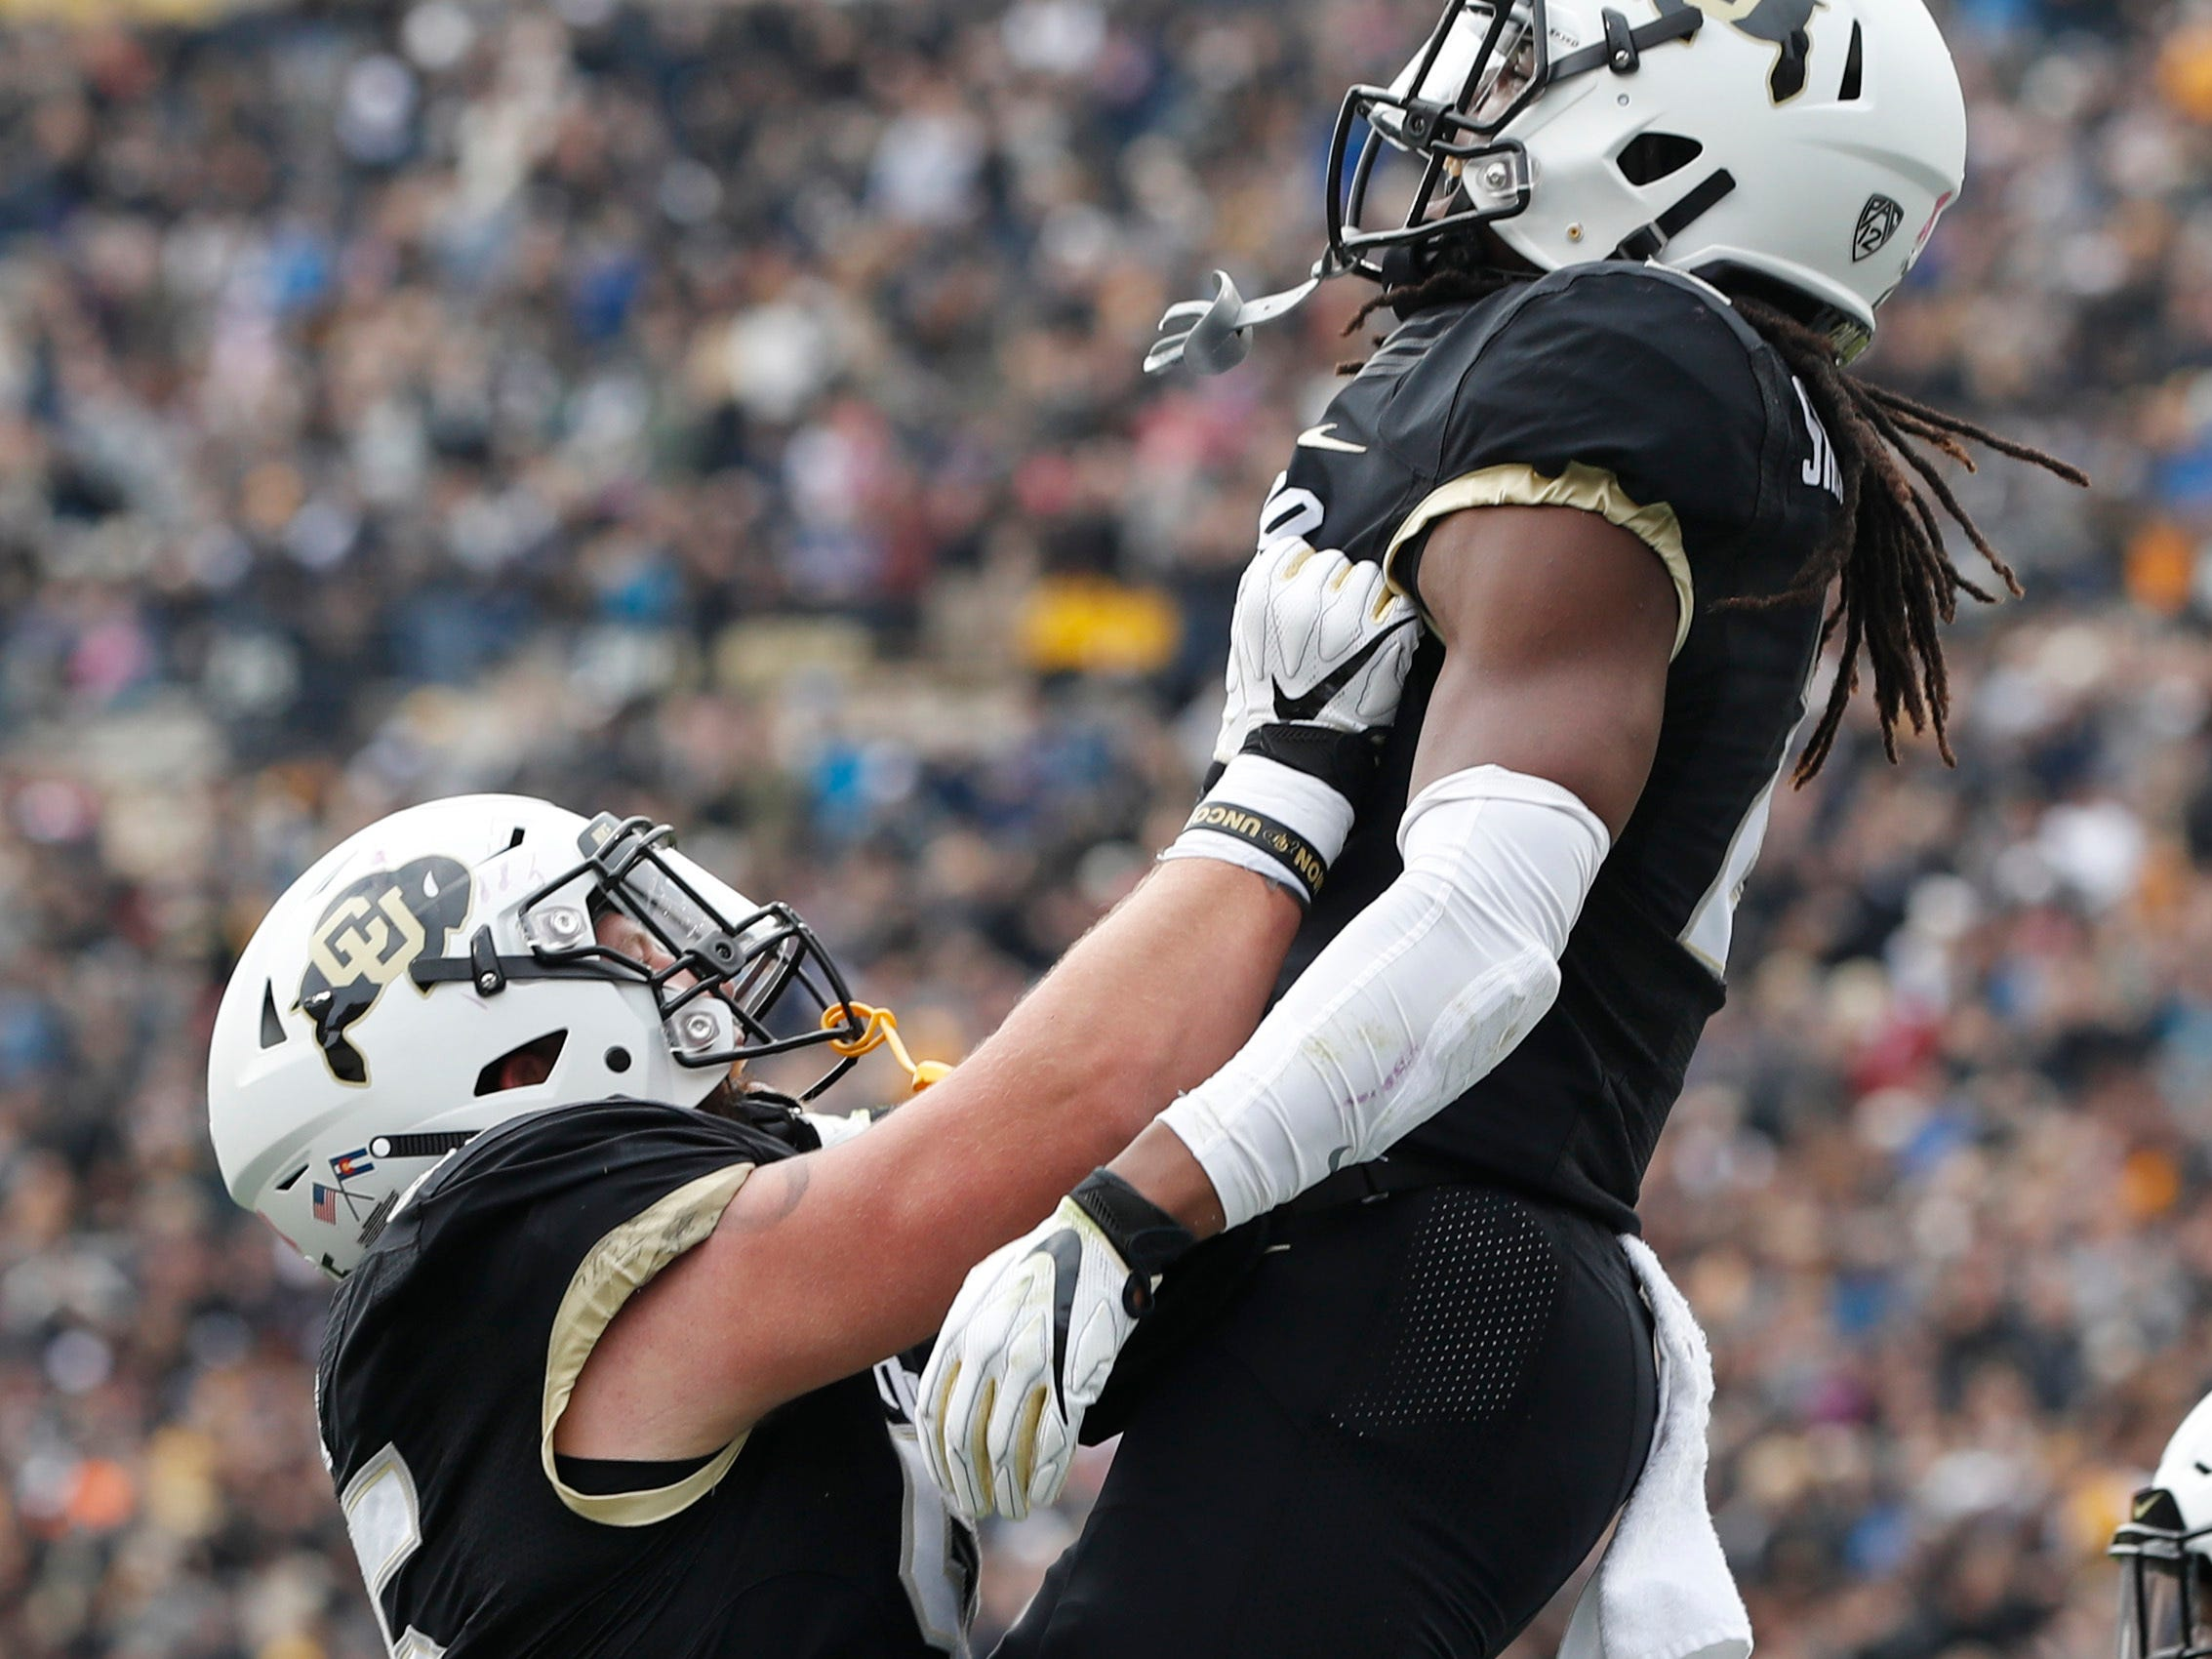 Colorado offensive lineman Brett Tonz, left, hoists wide receiver Laviska Shenault Jr. into the air to celebrate his run for a touchdown against Arizona State in the first half of an NCAA college football game Saturday, Oct. 6, 2018, in Boulder, Colo. (AP Photo/David Zalubowski)